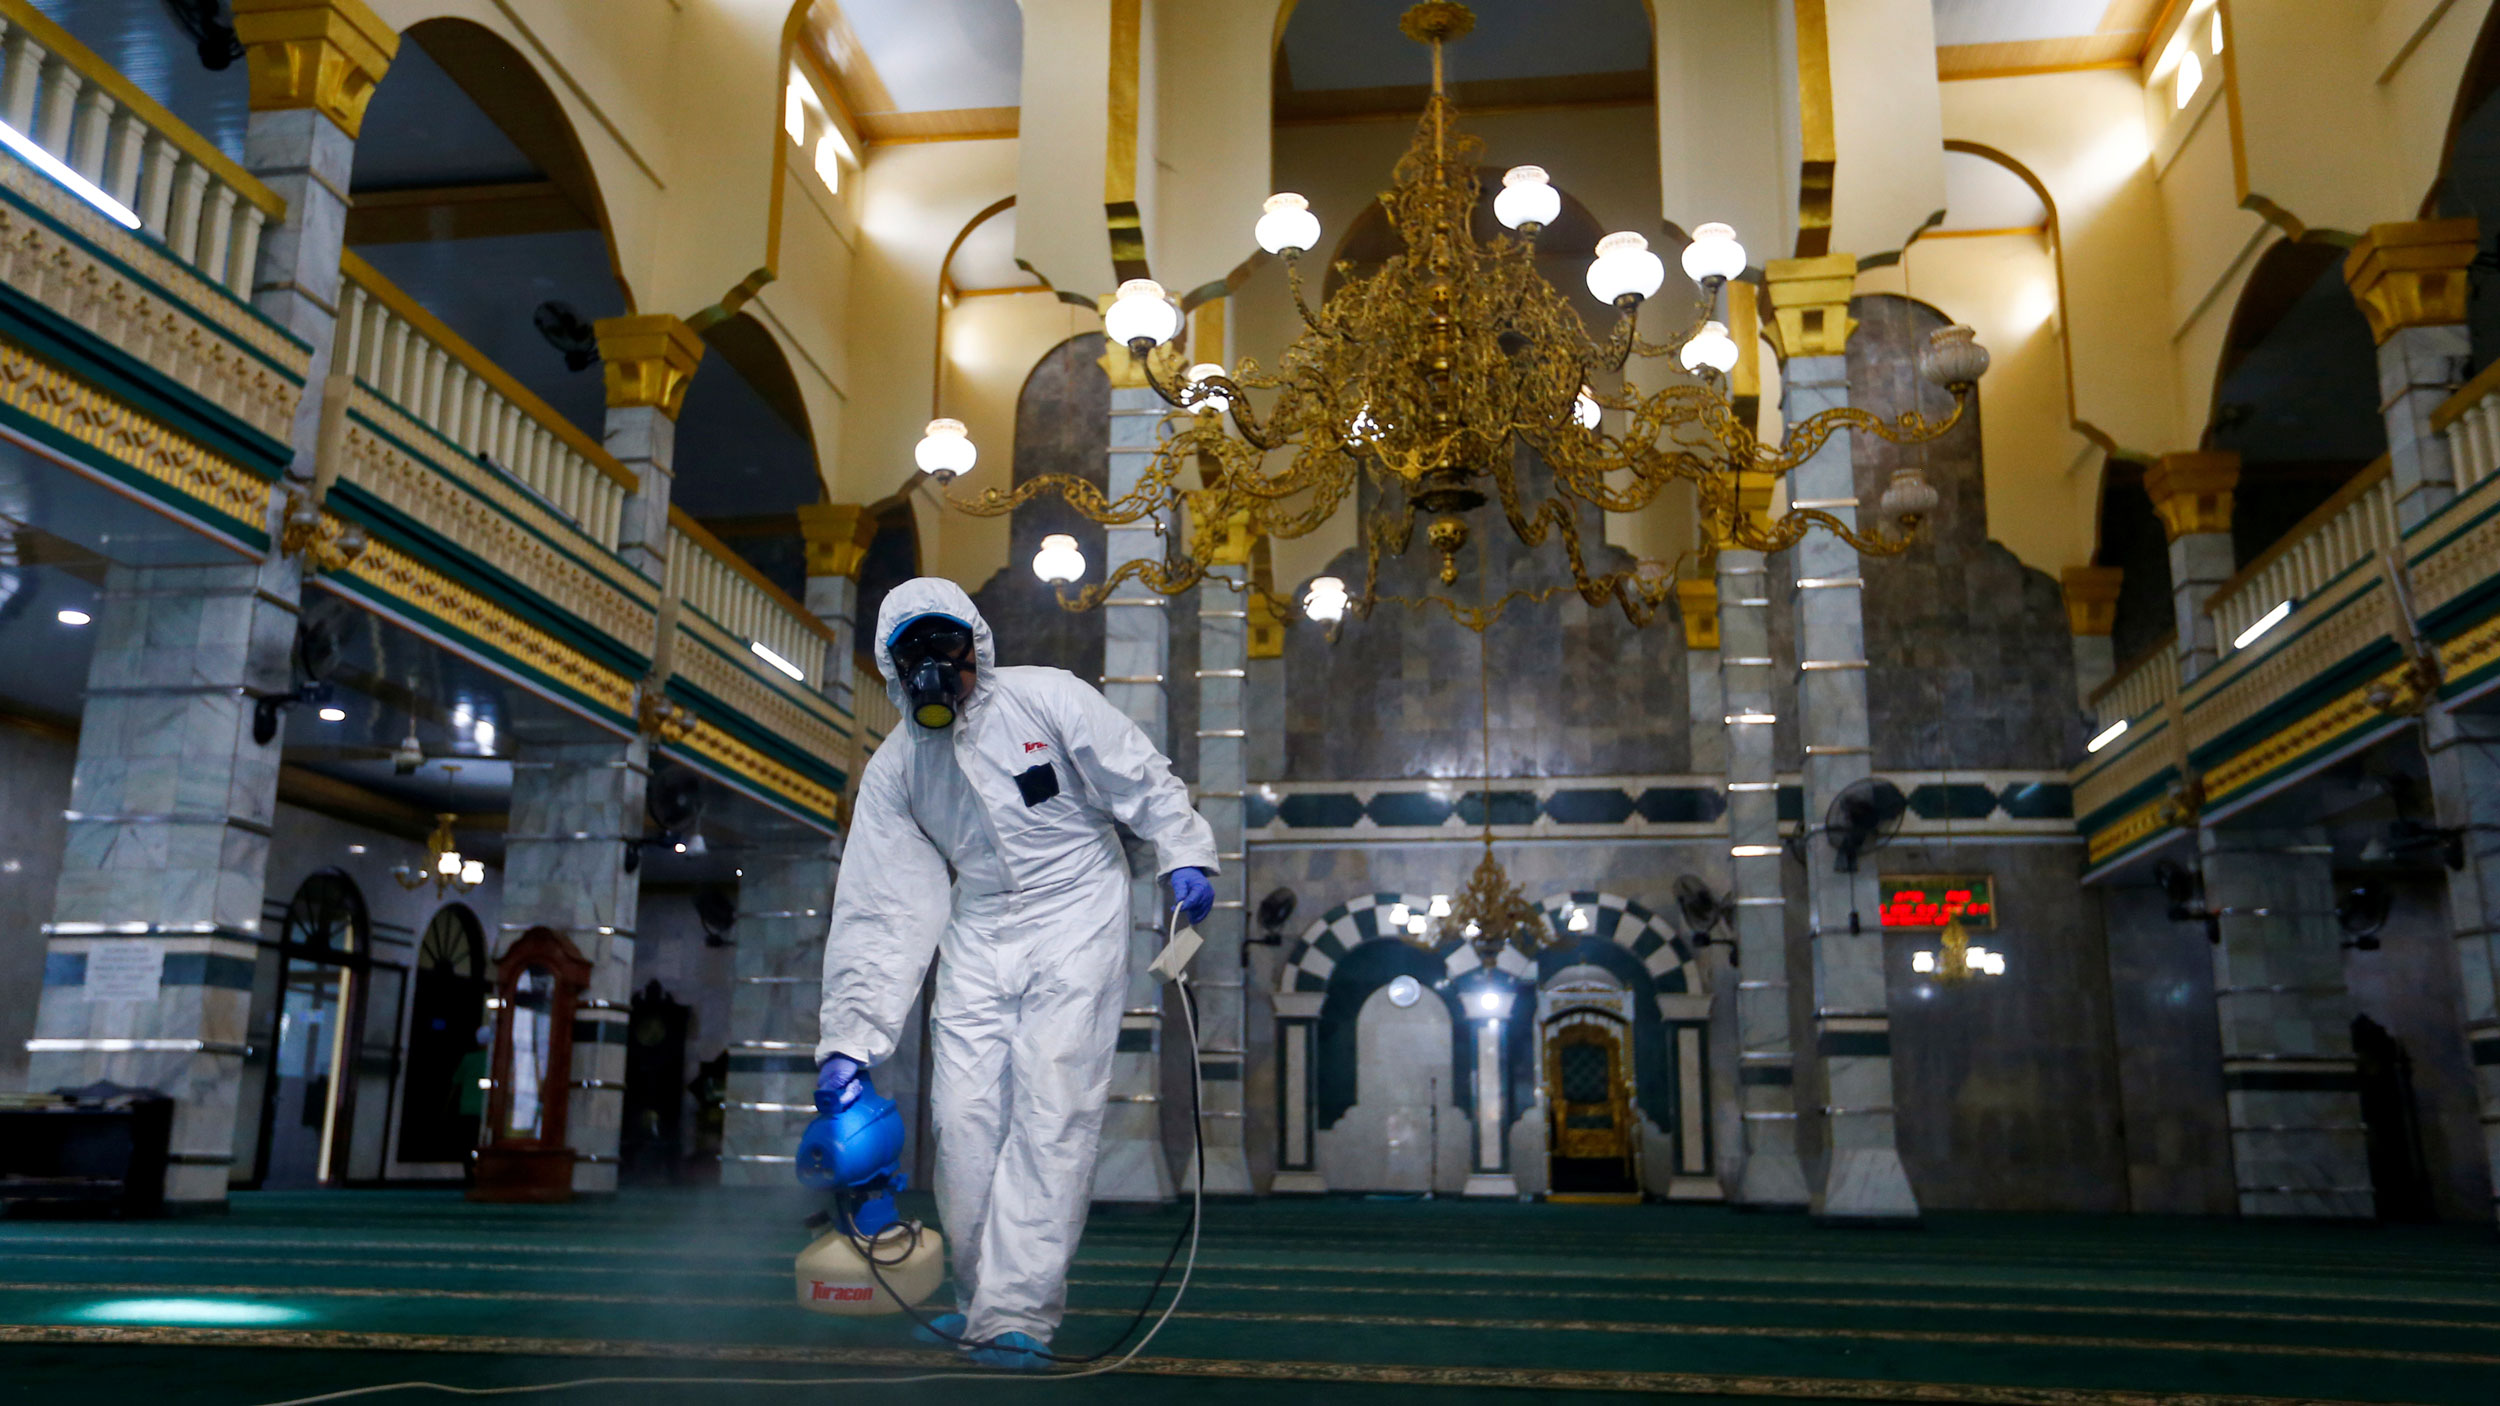 A medical officer wearing a white protective suit and a full face mask is shown spraying a carpet of a open area.